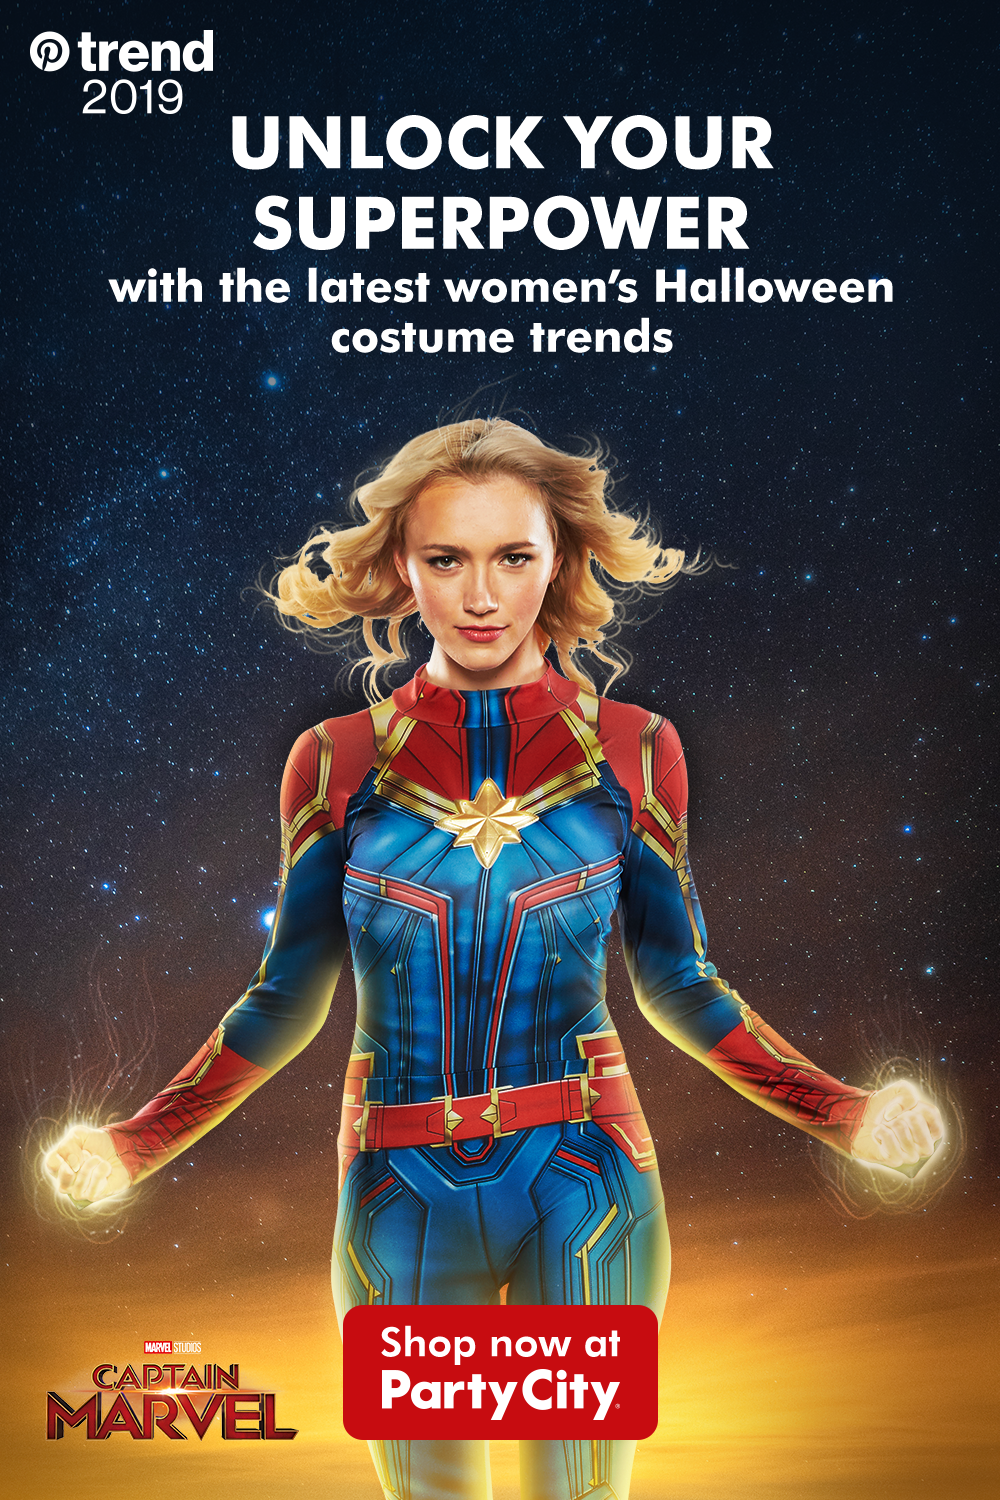 Pin On Hair Makeup The history of captain marvel's costumes. pin on hair makeup